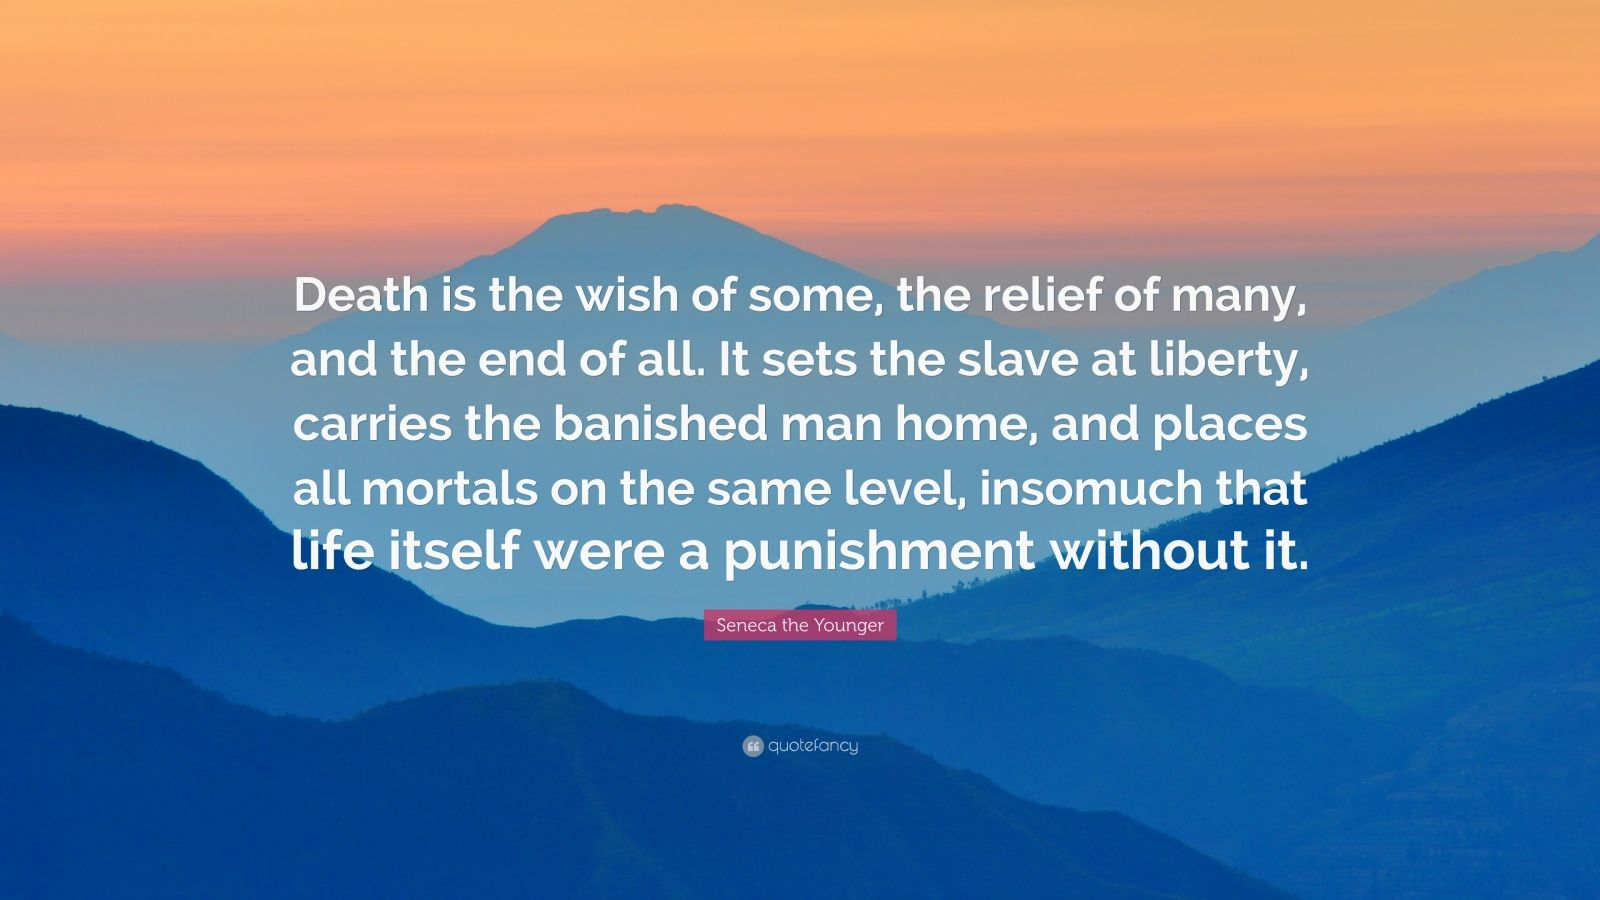 """Seneca the Younger Quote: """"Death is the wish of some, the relief of many, and the end of all. It sets the slave at liberty, carries the banished man home, and places all mortals on the same level, insomuch that life itself were a punishment without it."""""""